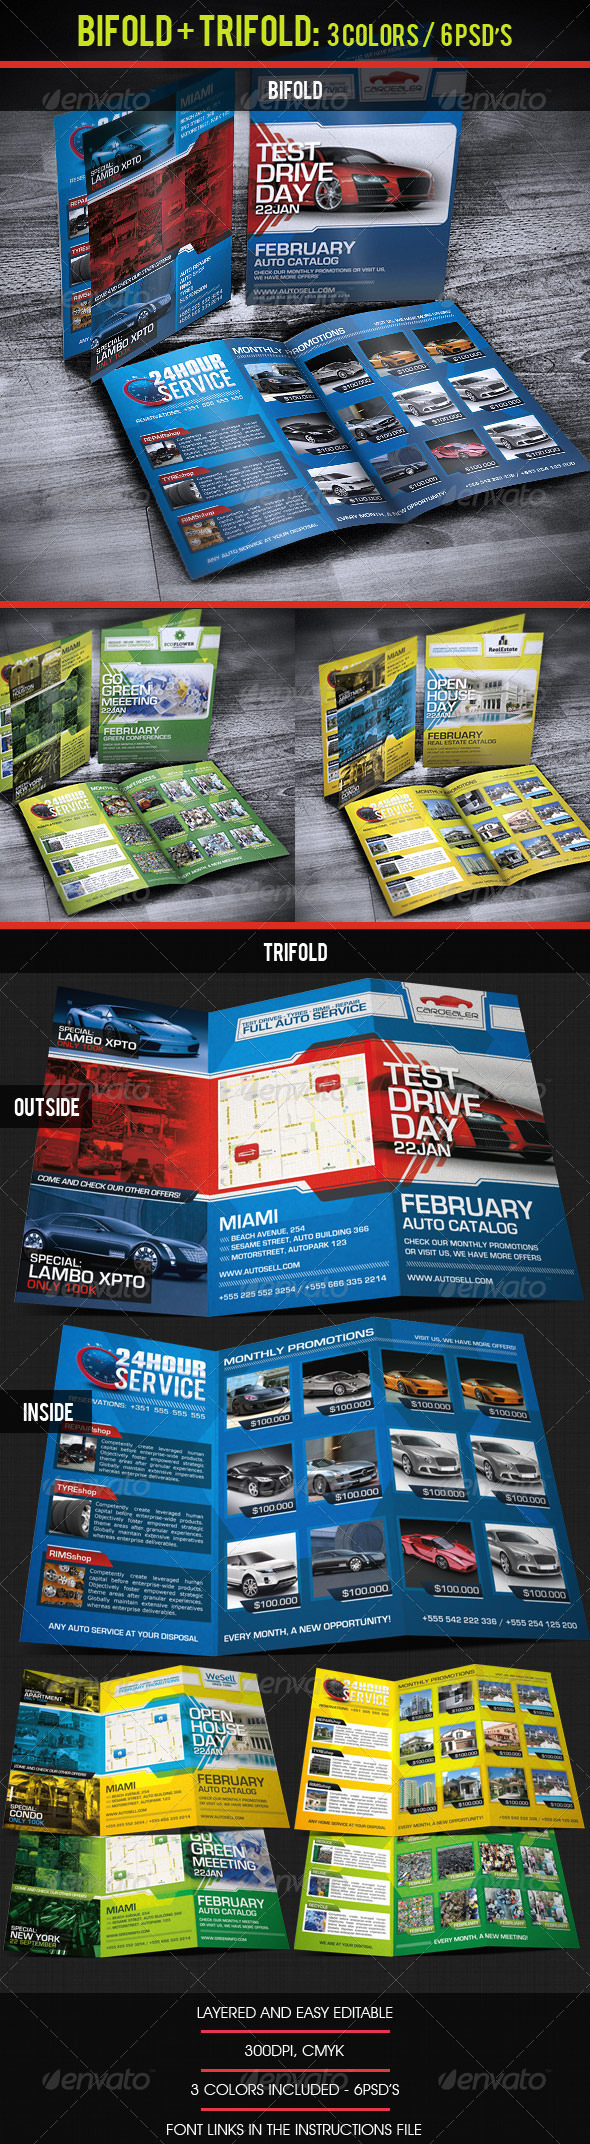 GraphicRiver Bifold & Trifold Business Catalog Brochure 3371885